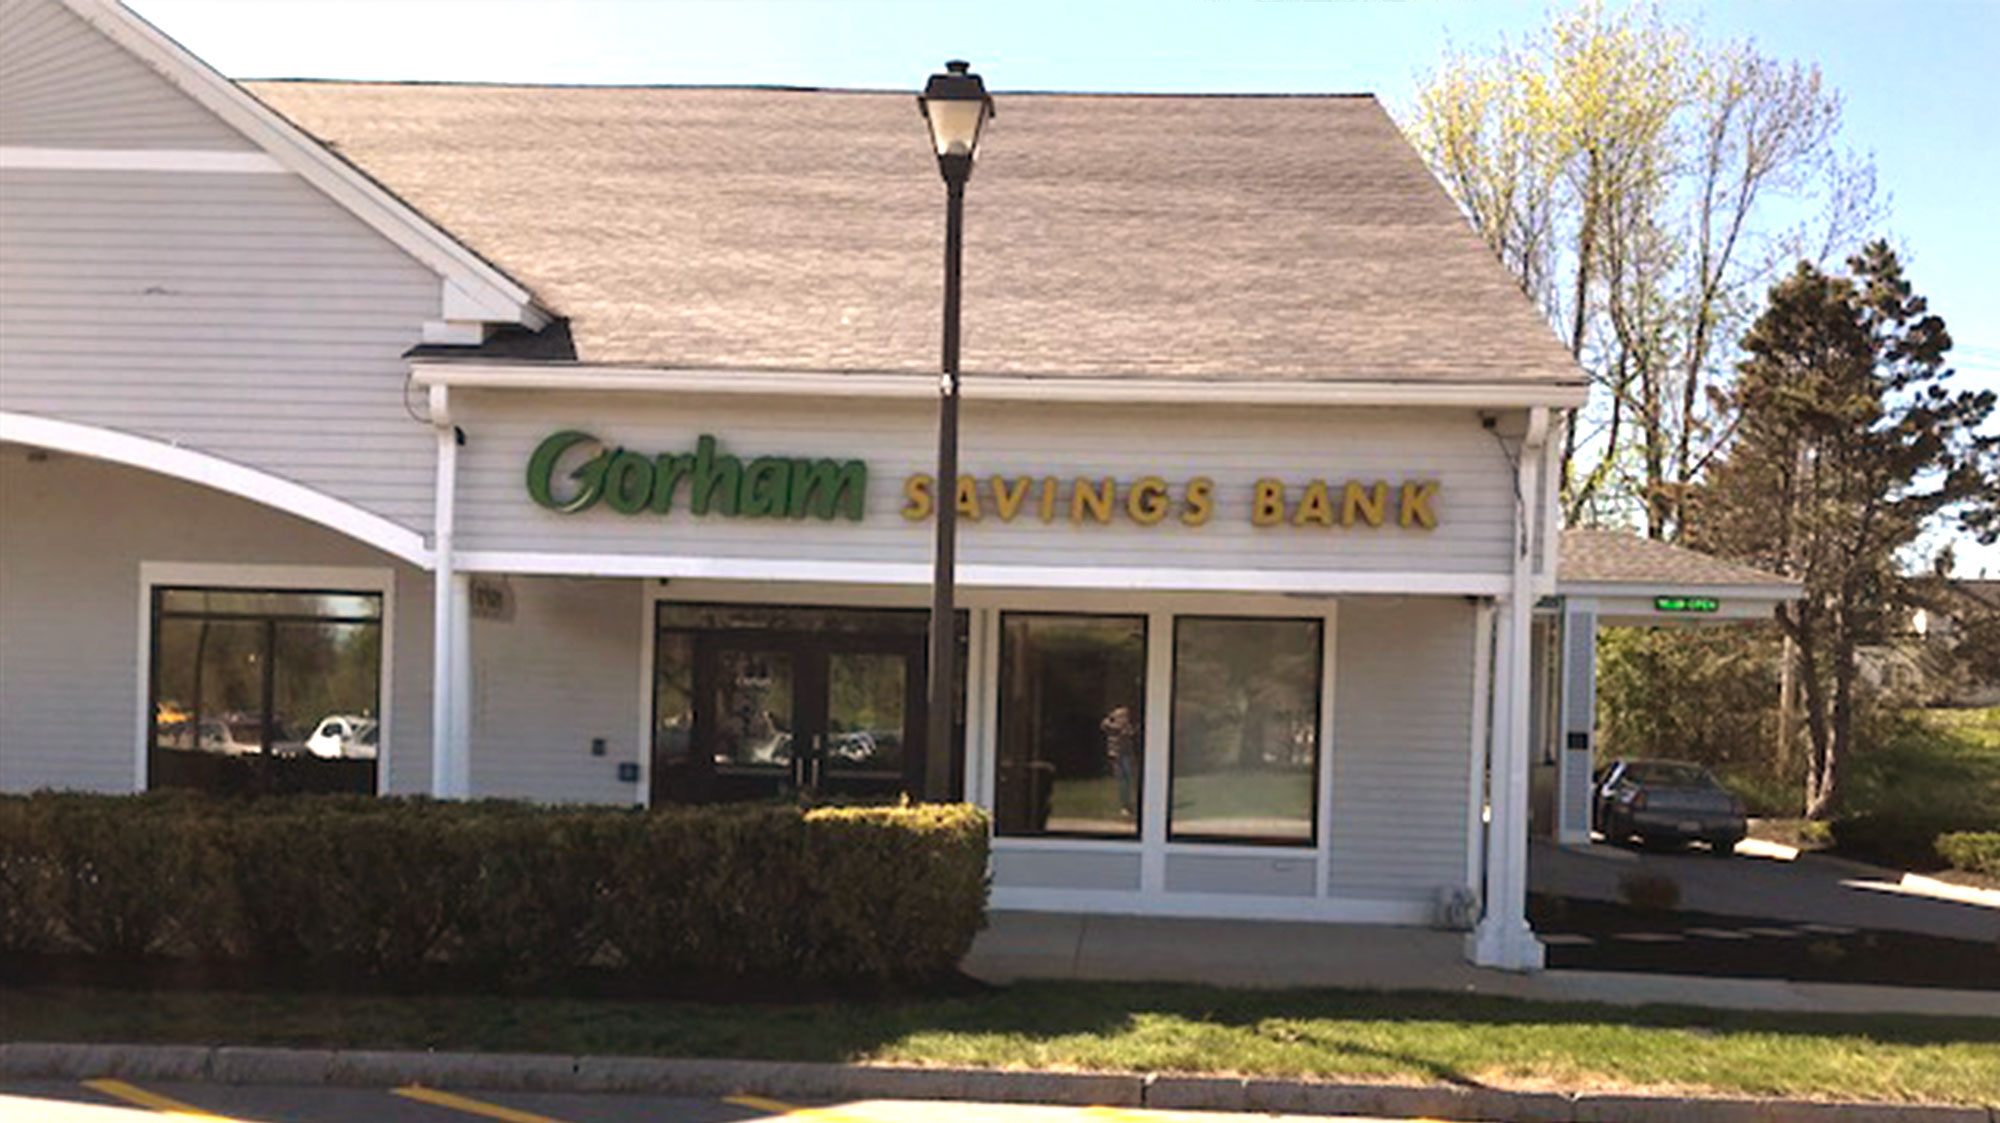 Gorham Savings Bank Standish location outside during the day